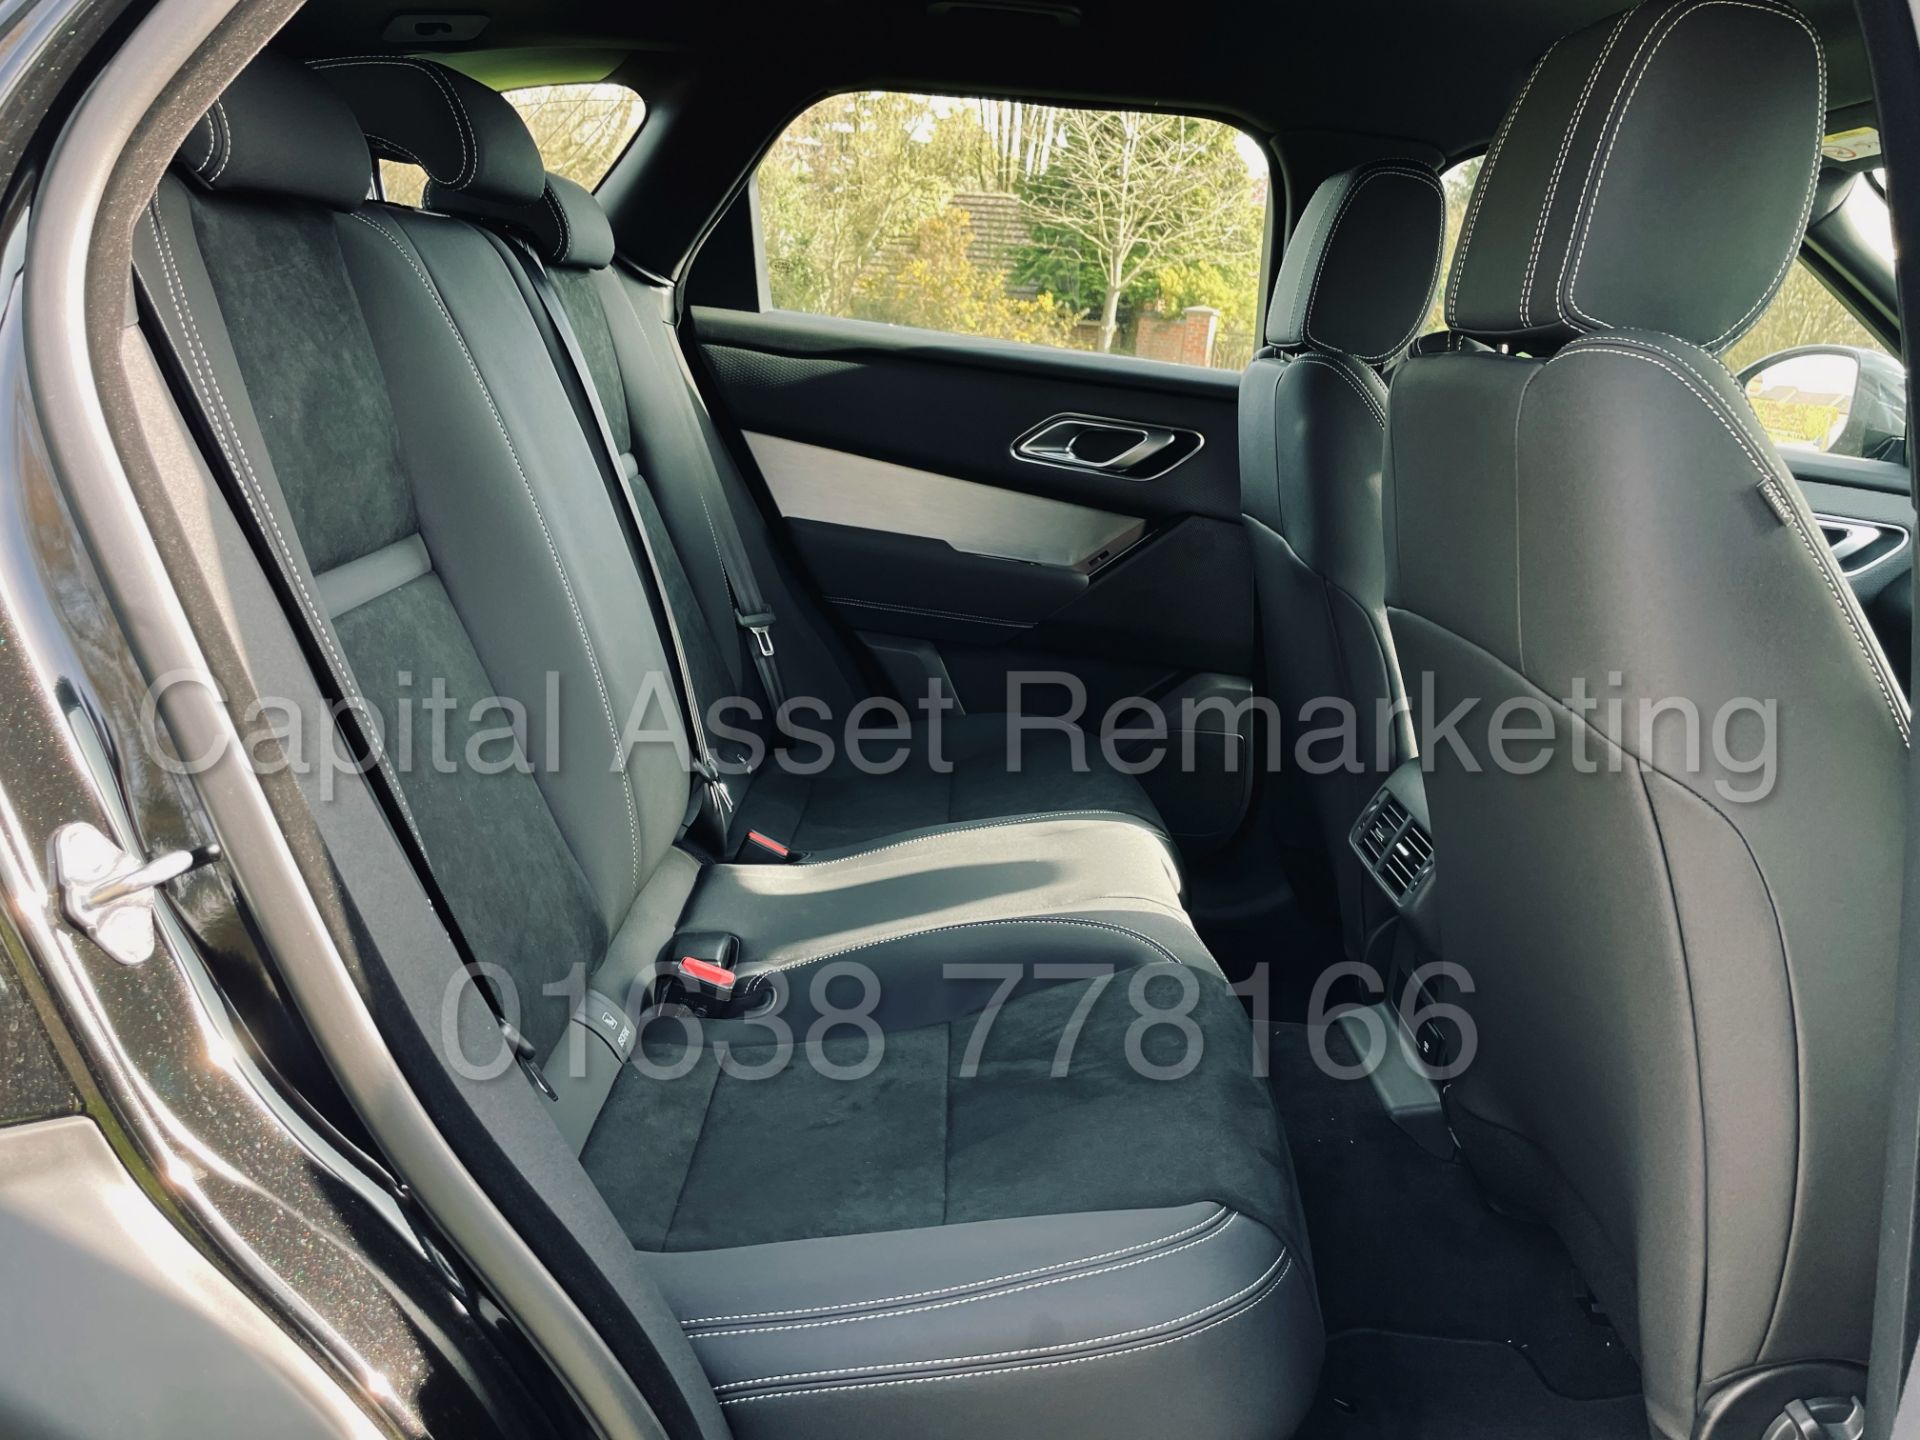 (On Sale) RANGE ROVER VELAR *R-DYNAMIC* SUV (2021) *8 SPEED AUTO - LEATHER* (DELIVERY MILES) - Image 31 of 50